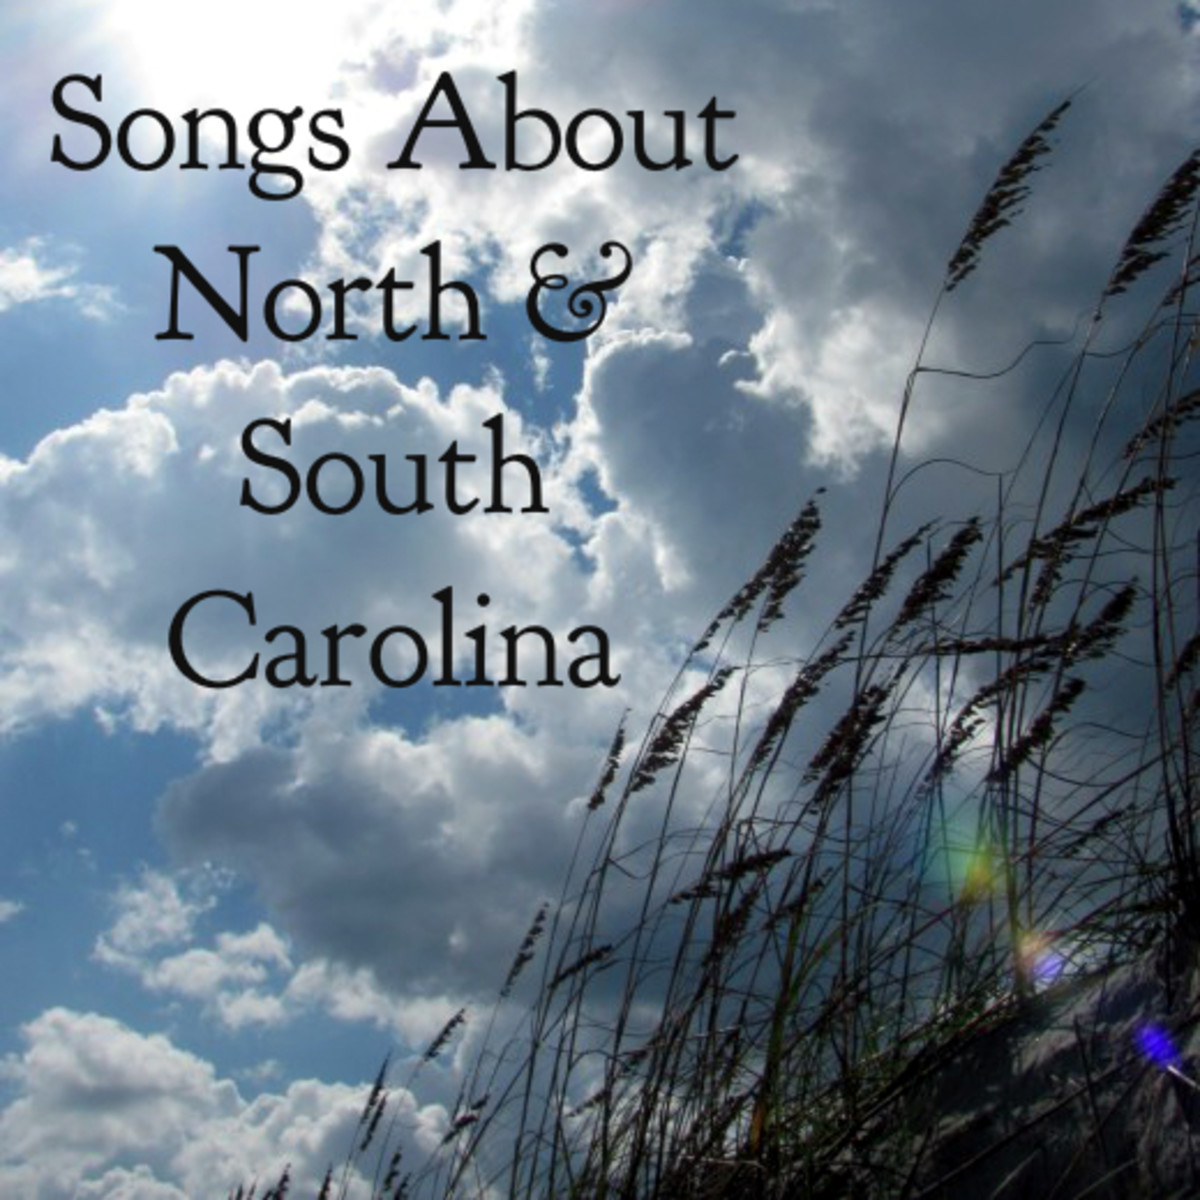 54 Songs About North Carolina and South Carolina